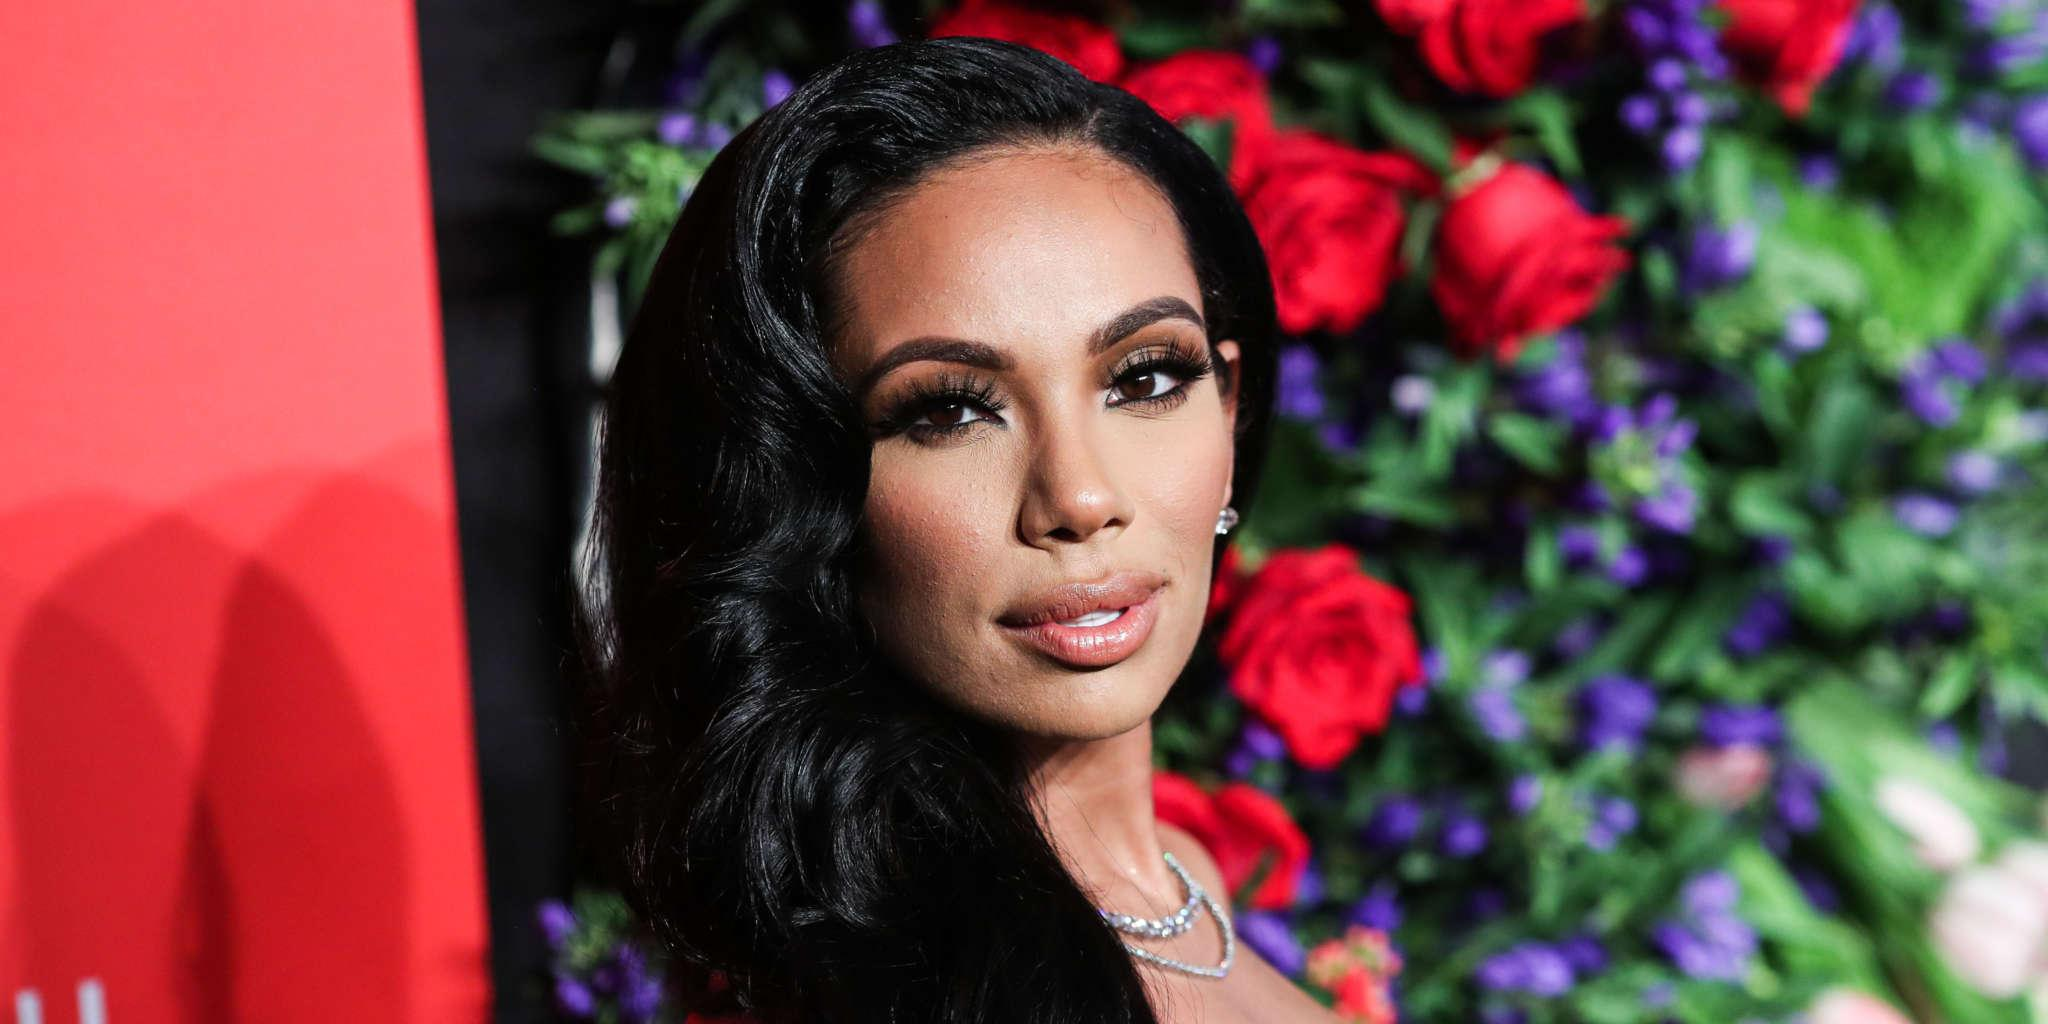 Erica Mena Shares Her Hair Secrets In This Video